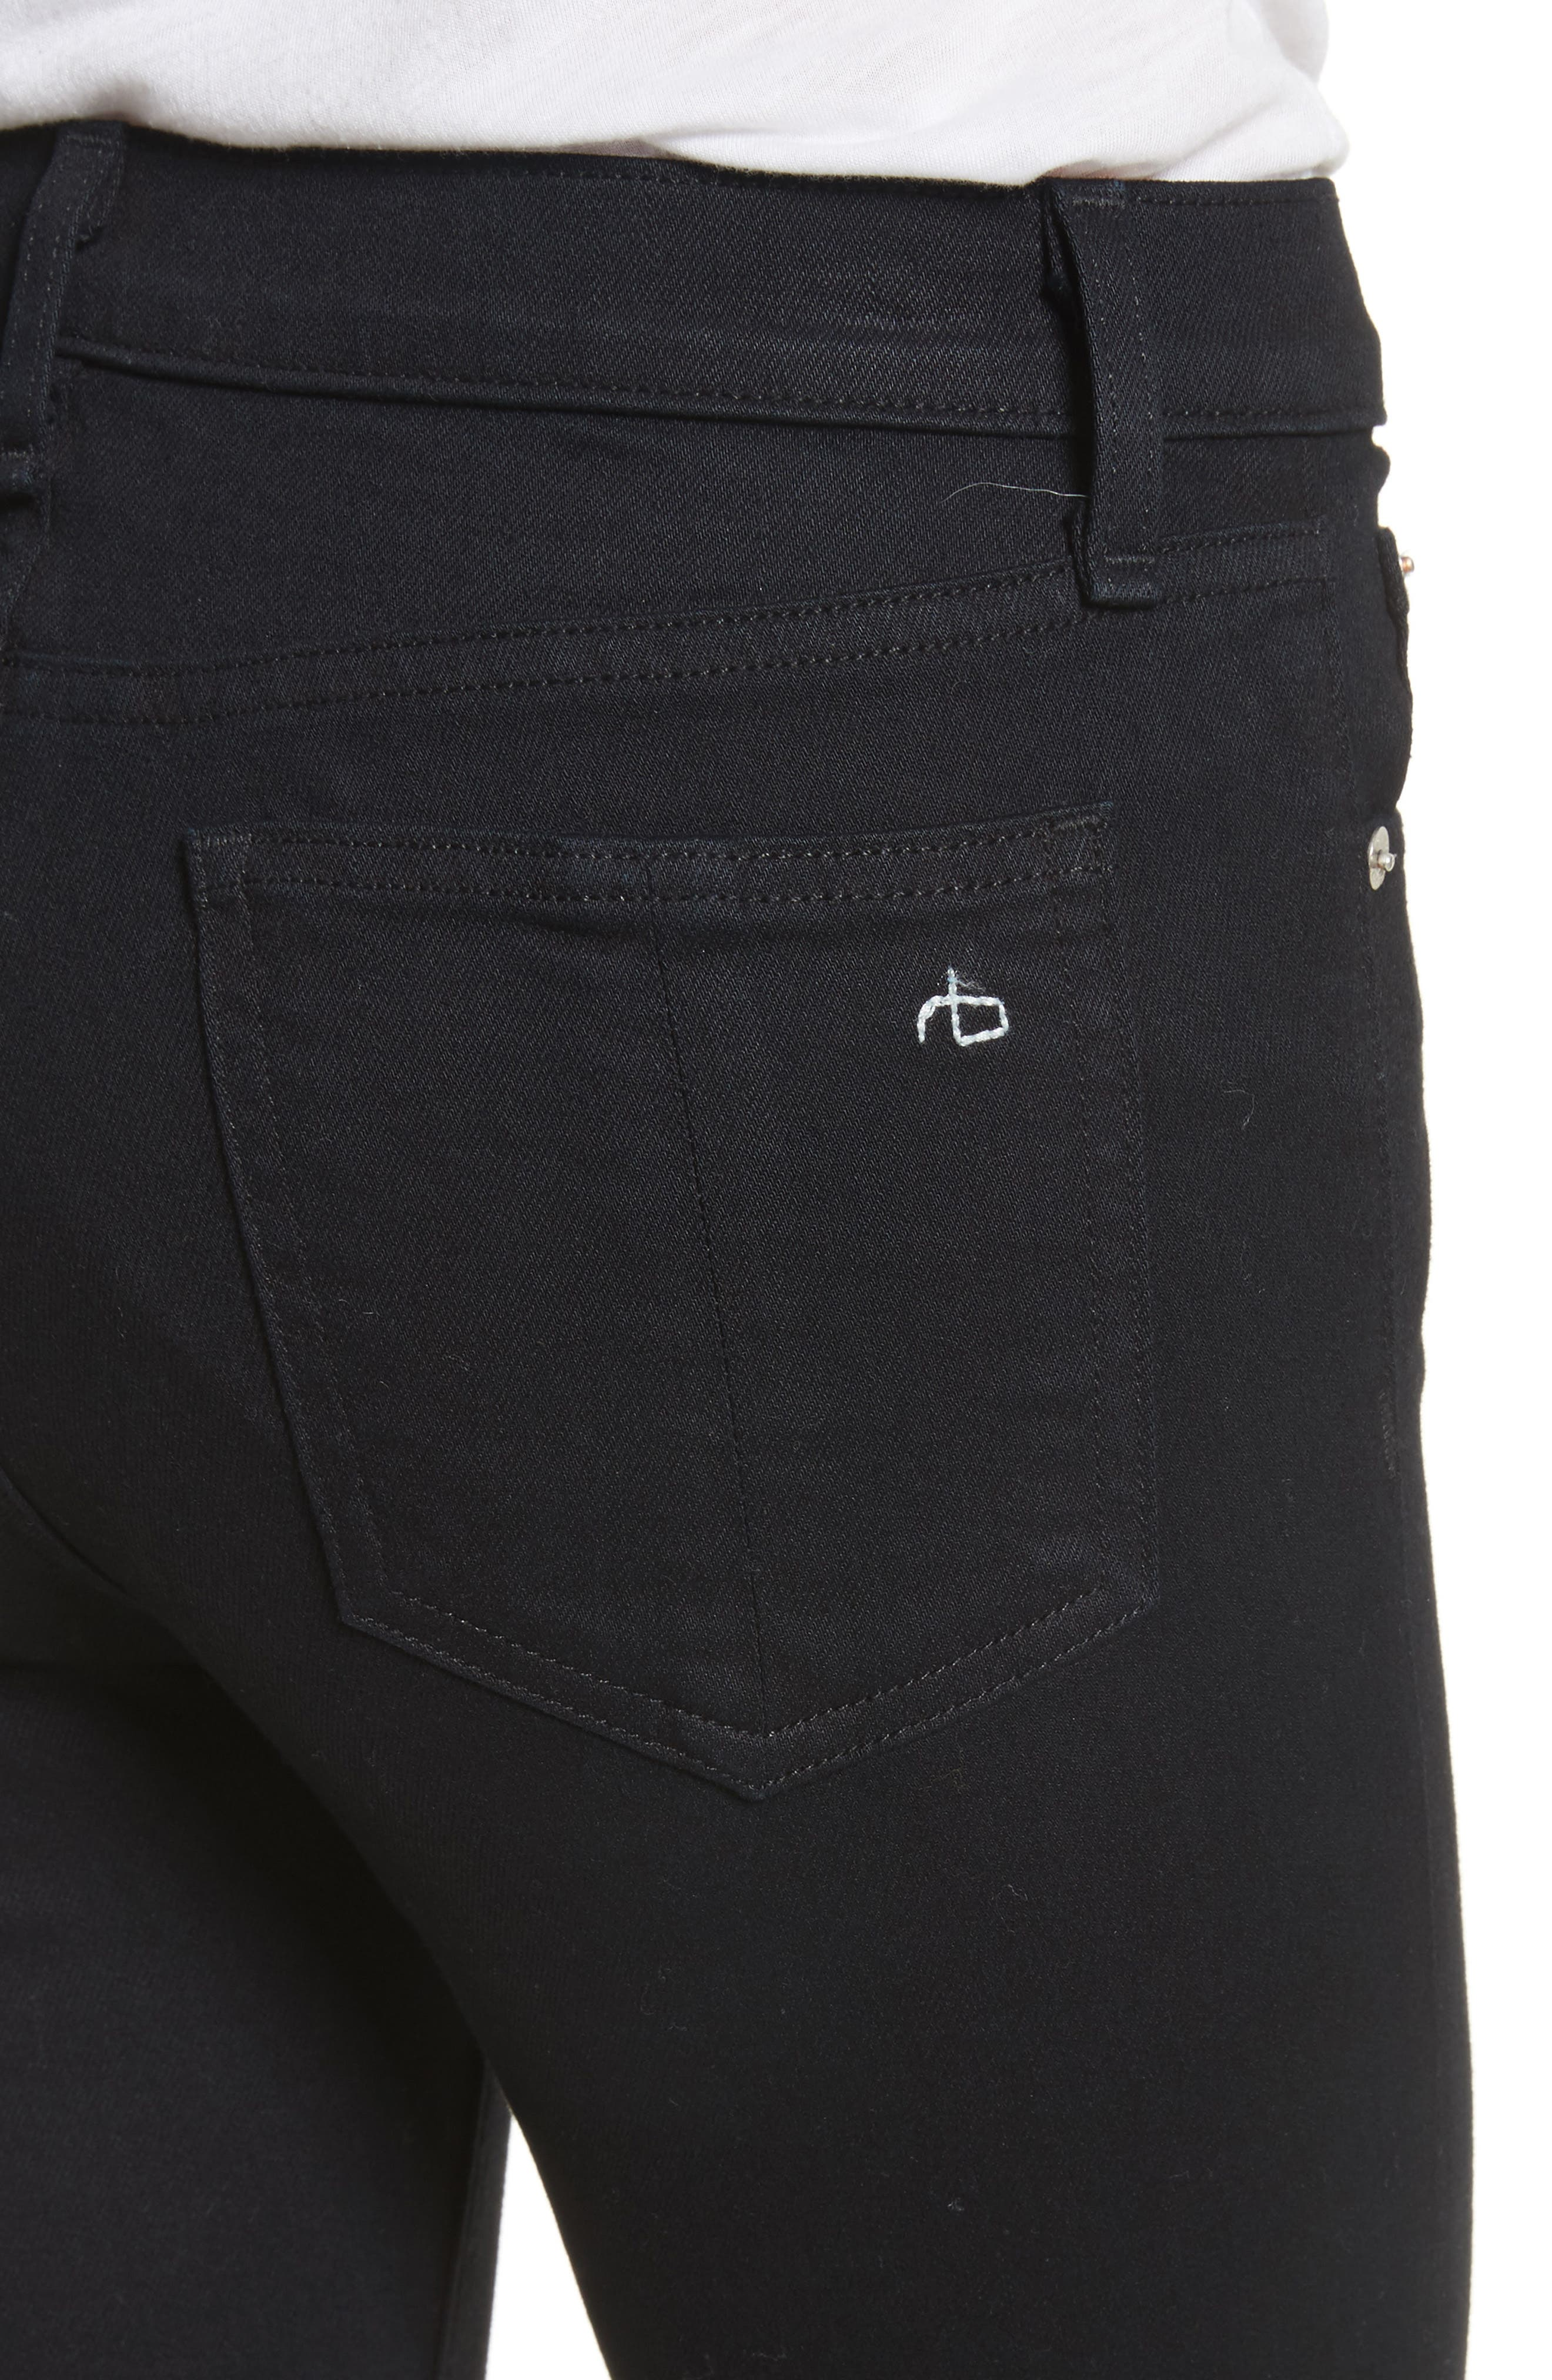 High Waist Stovepipe Jeans,                             Alternate thumbnail 4, color,                             001